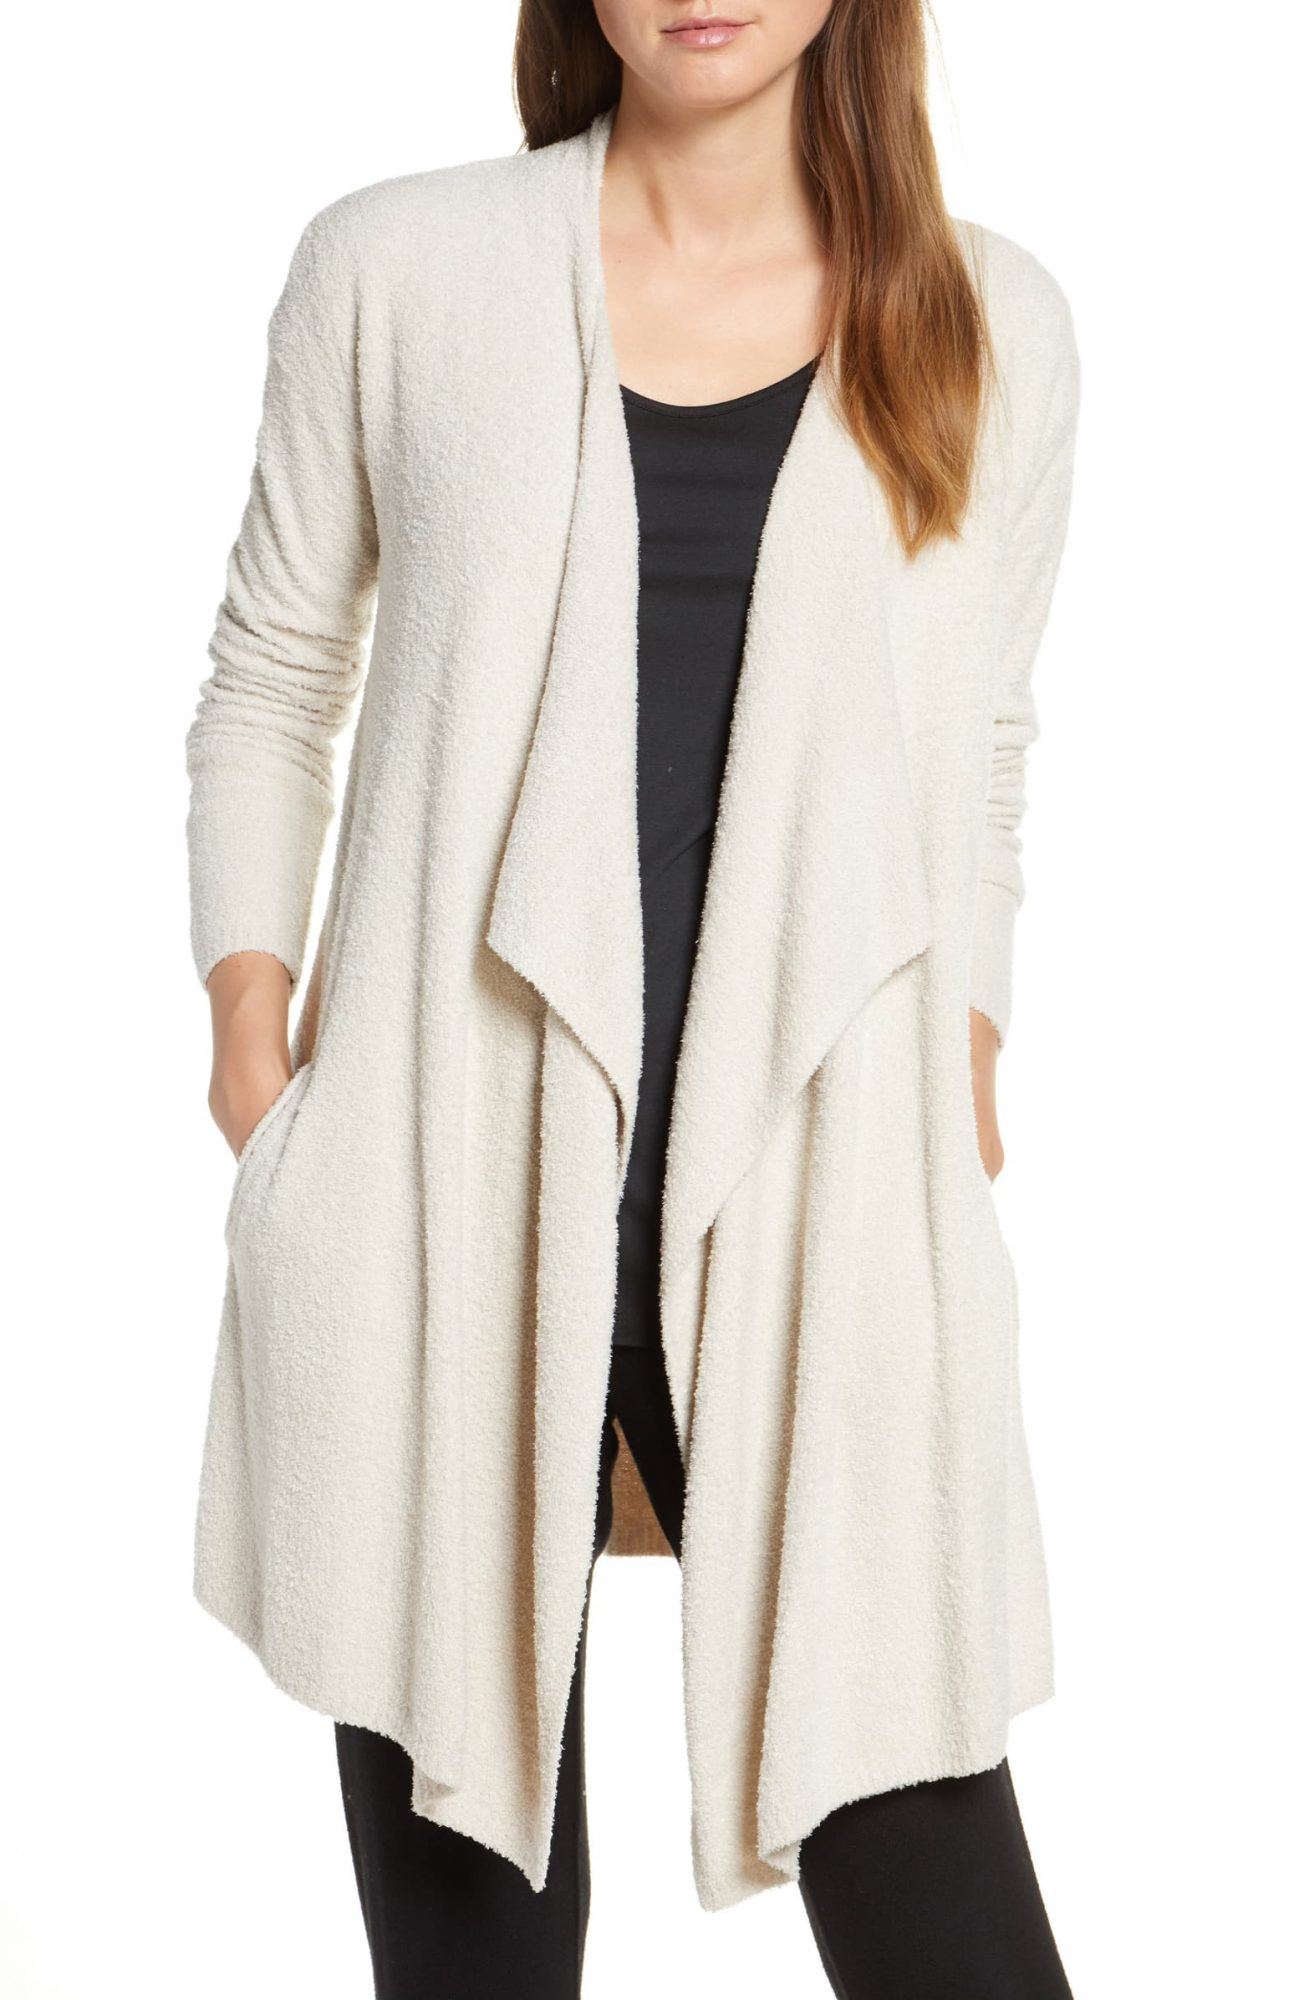 nordstrom cozy cardigan, work from home clothes